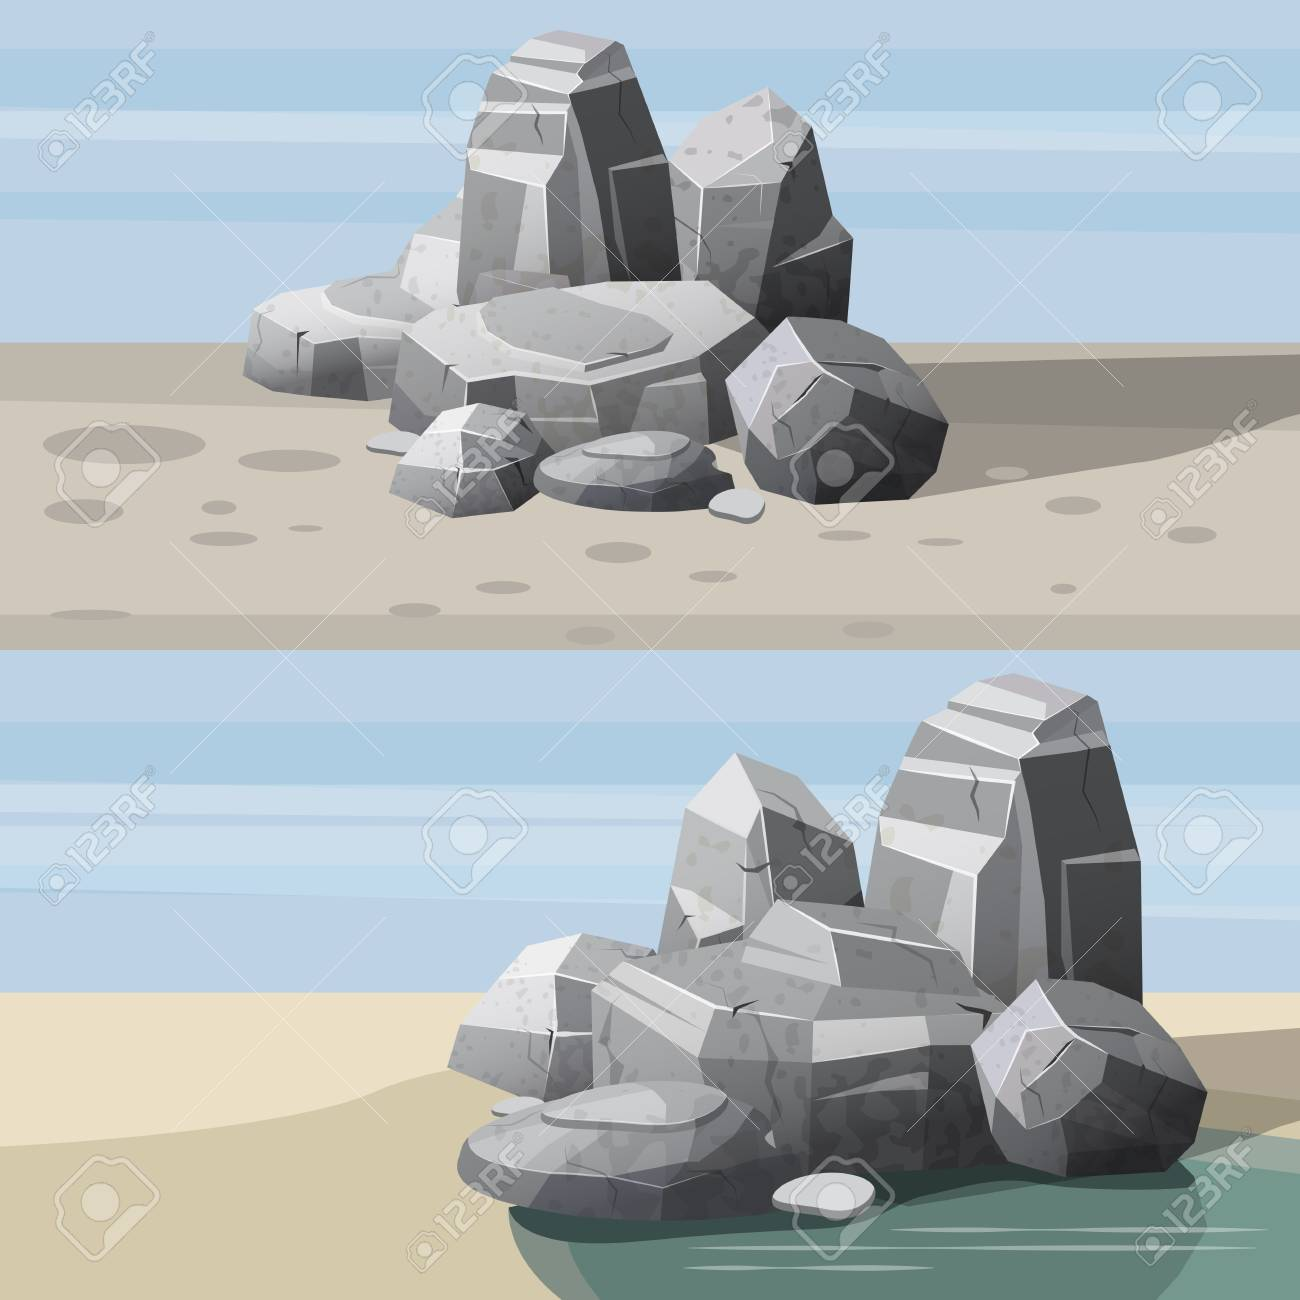 Rocks and stones single or piled for damage and rubble for game